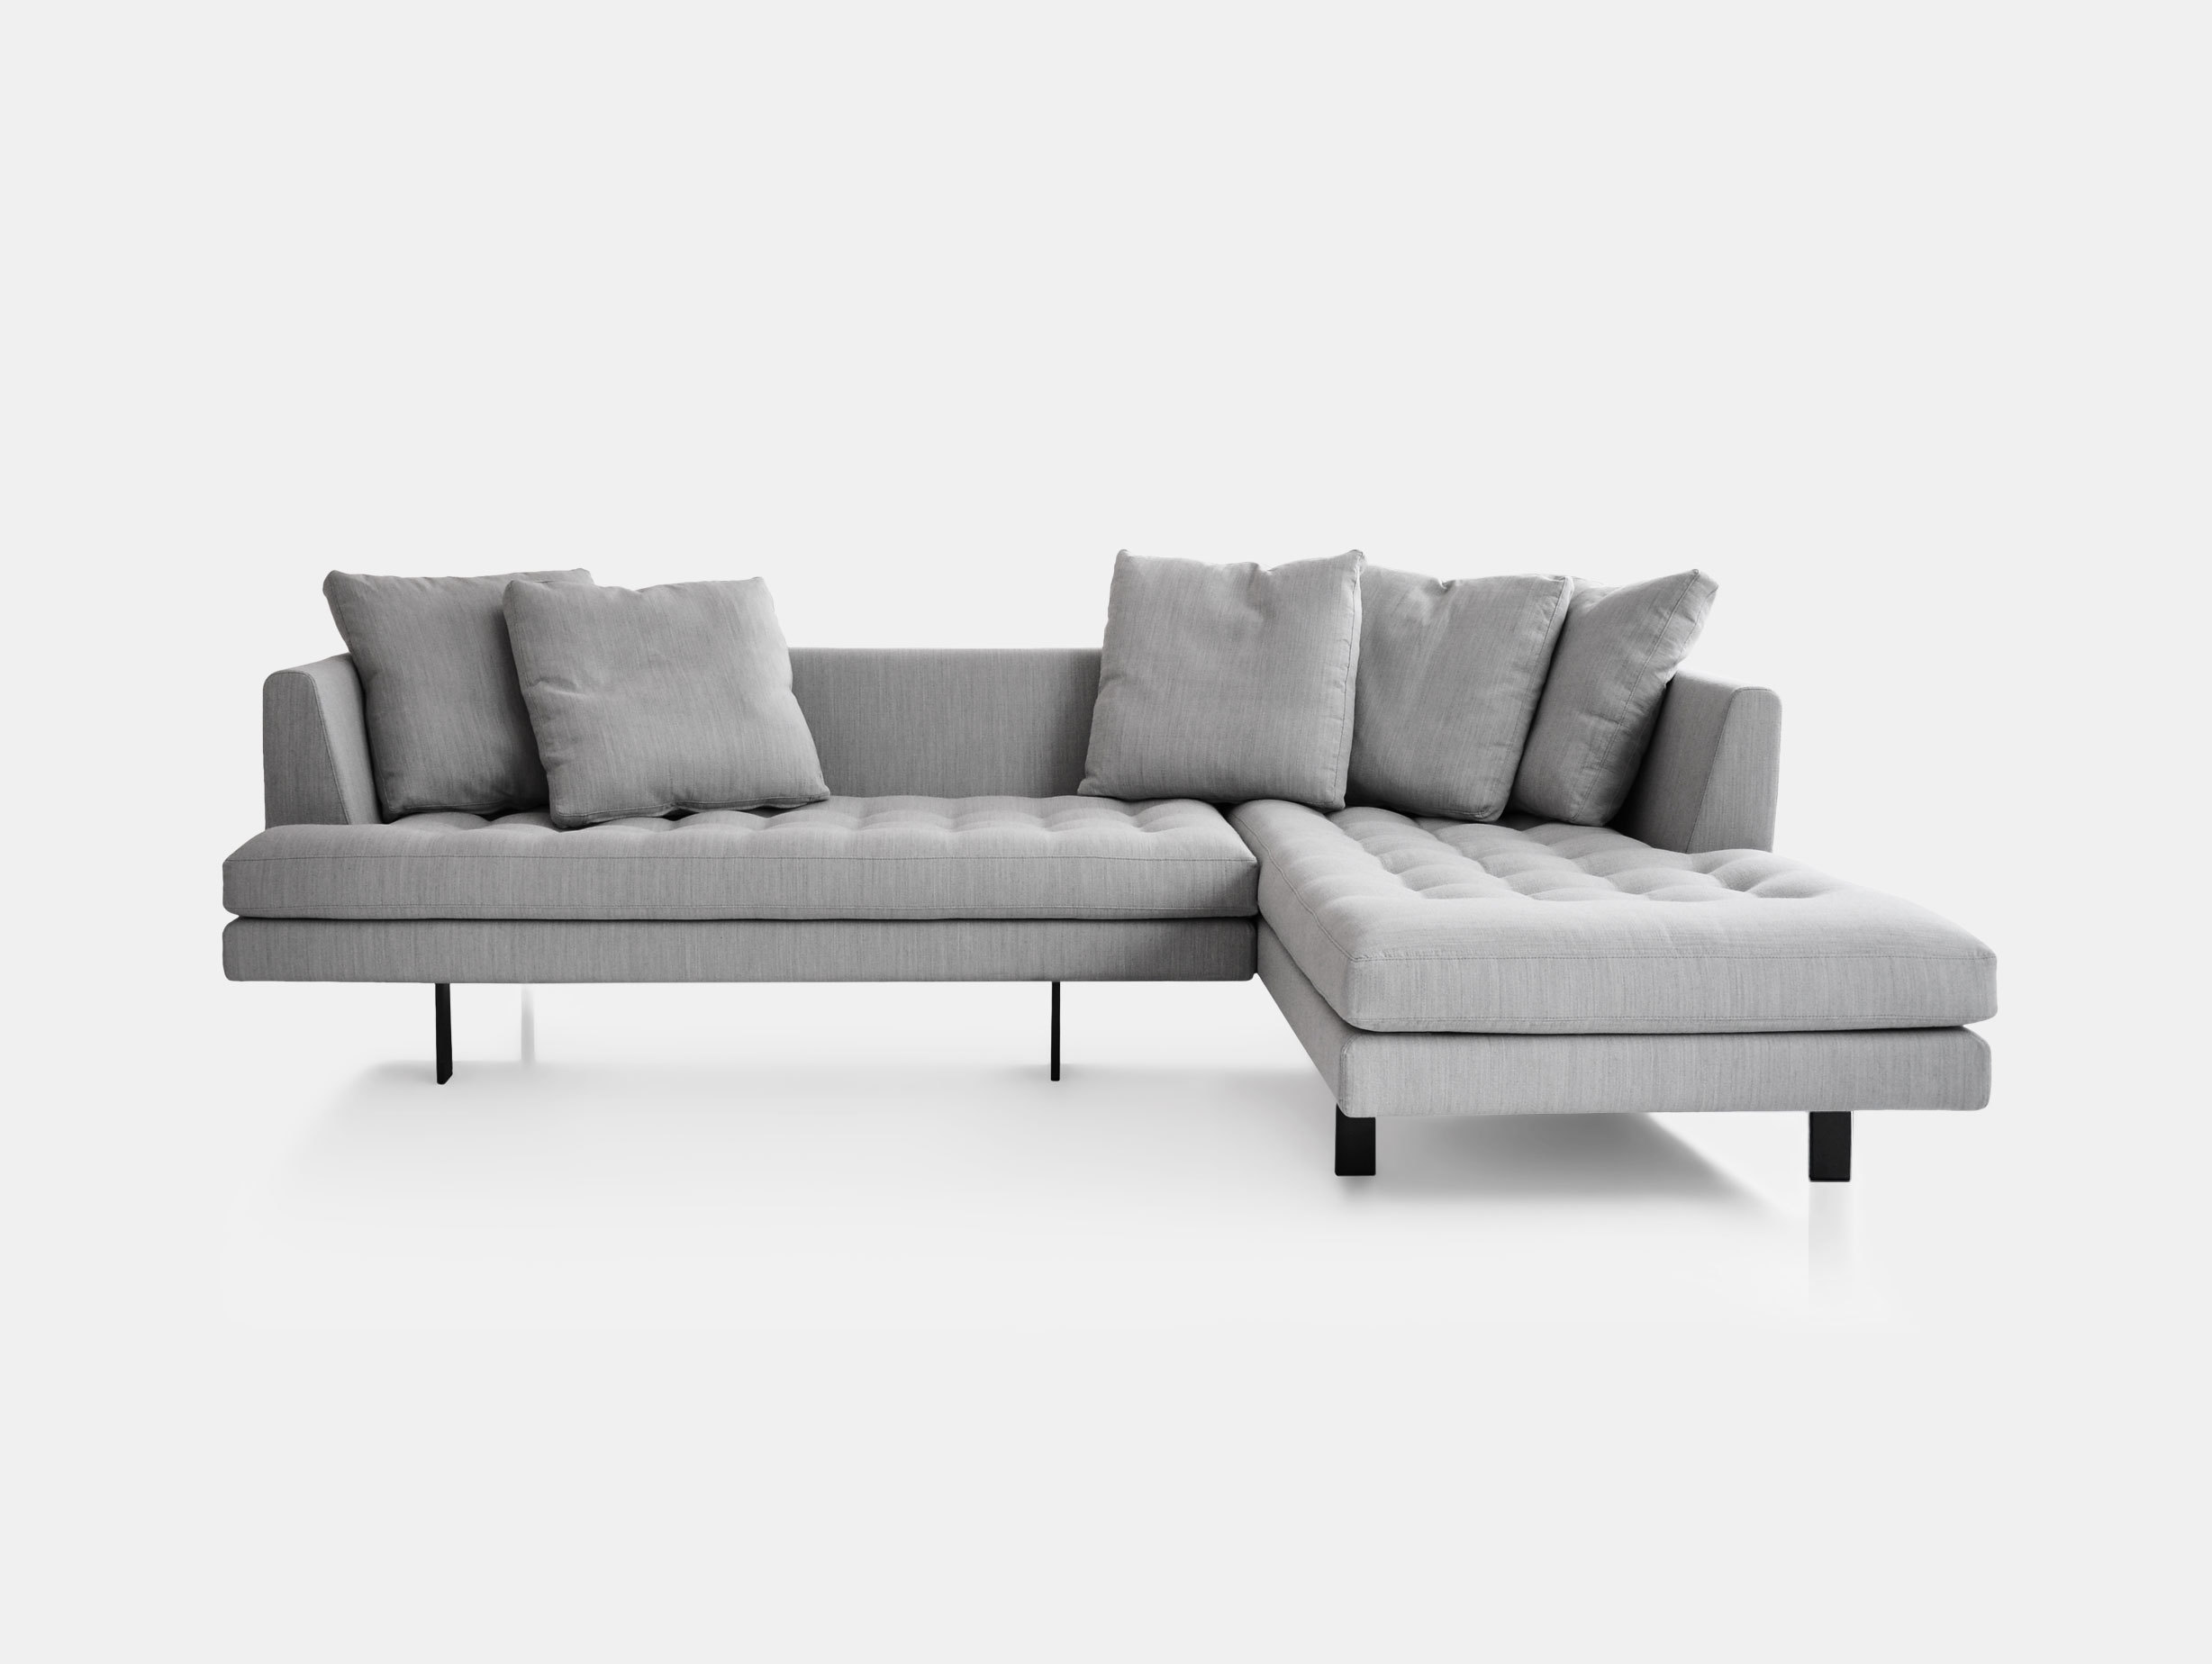 Marvelous Edward Sectional Sofa Alphanode Cool Chair Designs And Ideas Alphanodeonline